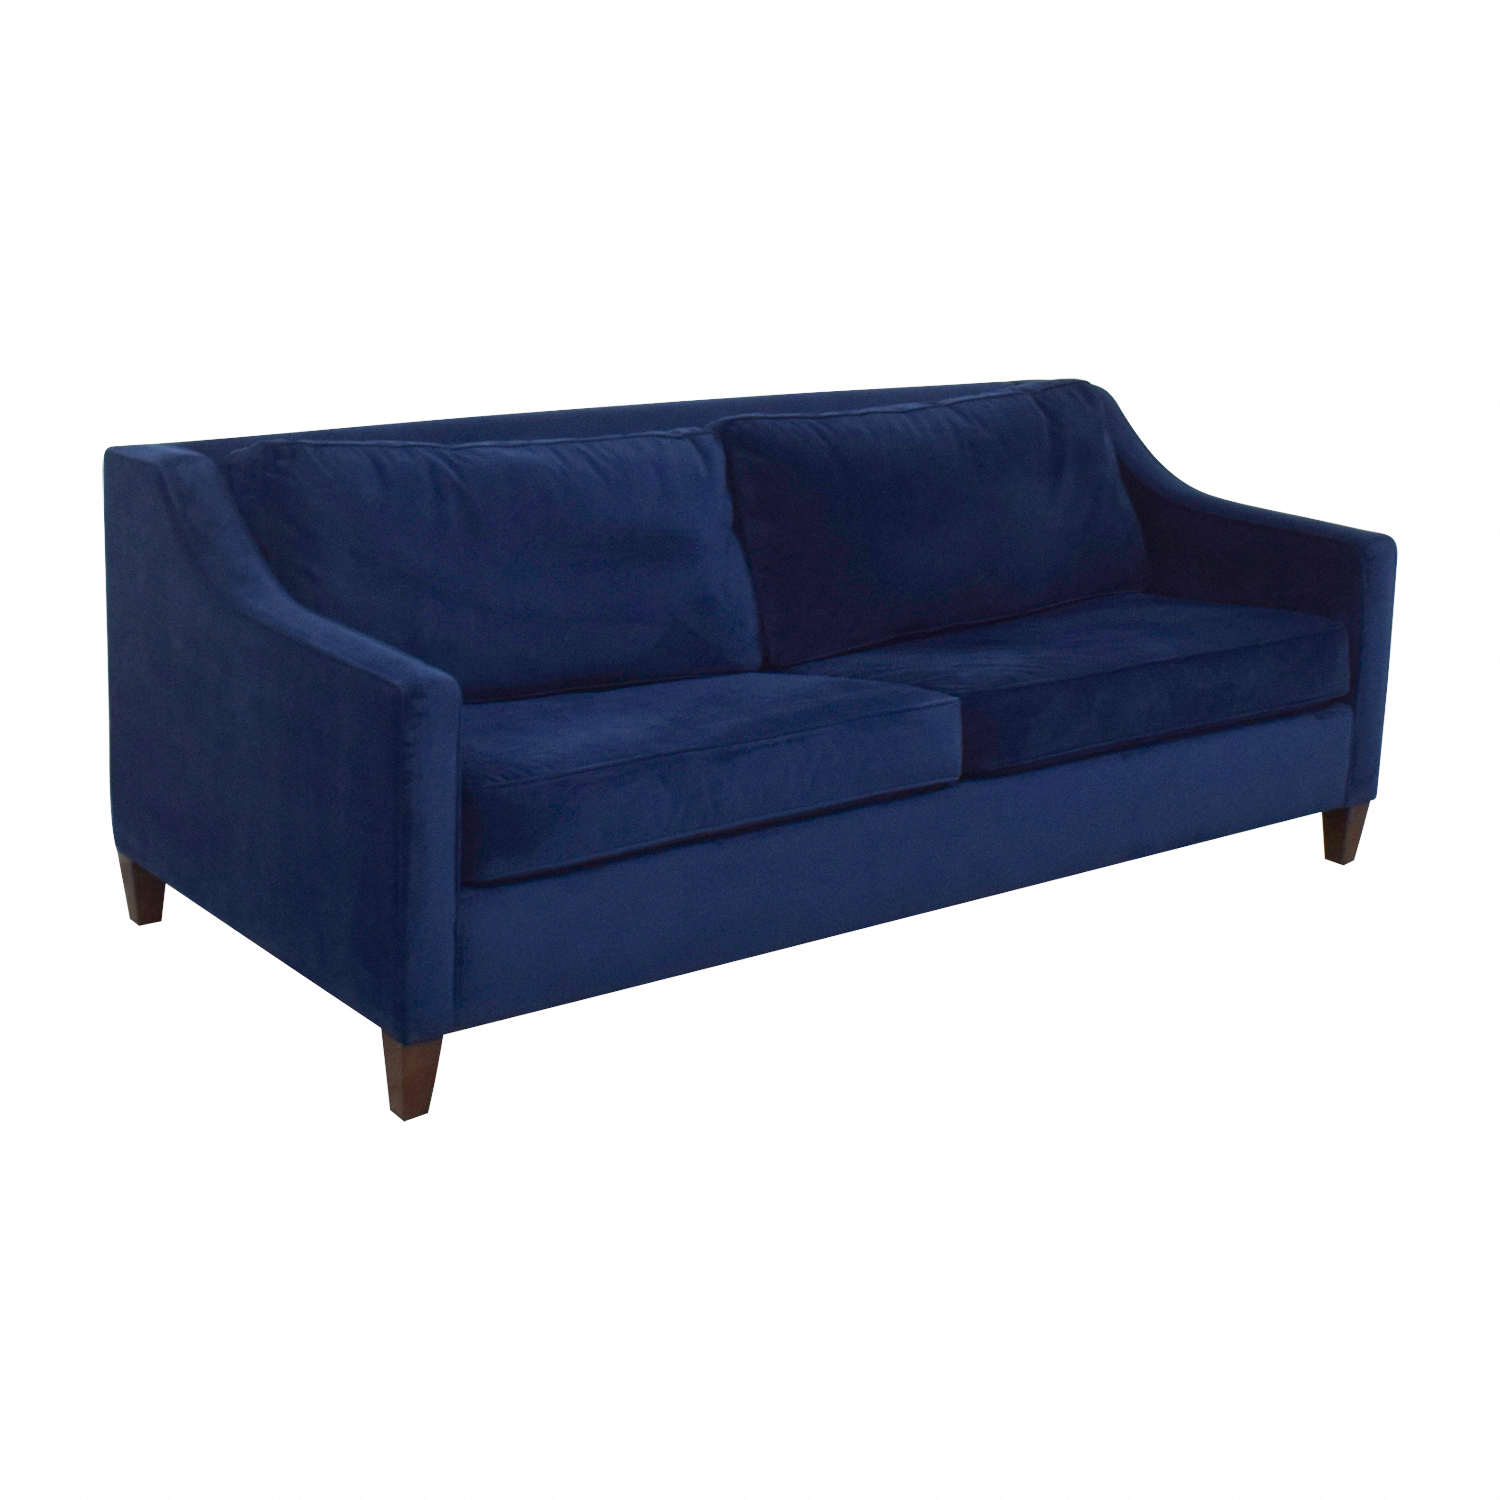 West Elm Paidge Queen Sleeper Sofa West Elm